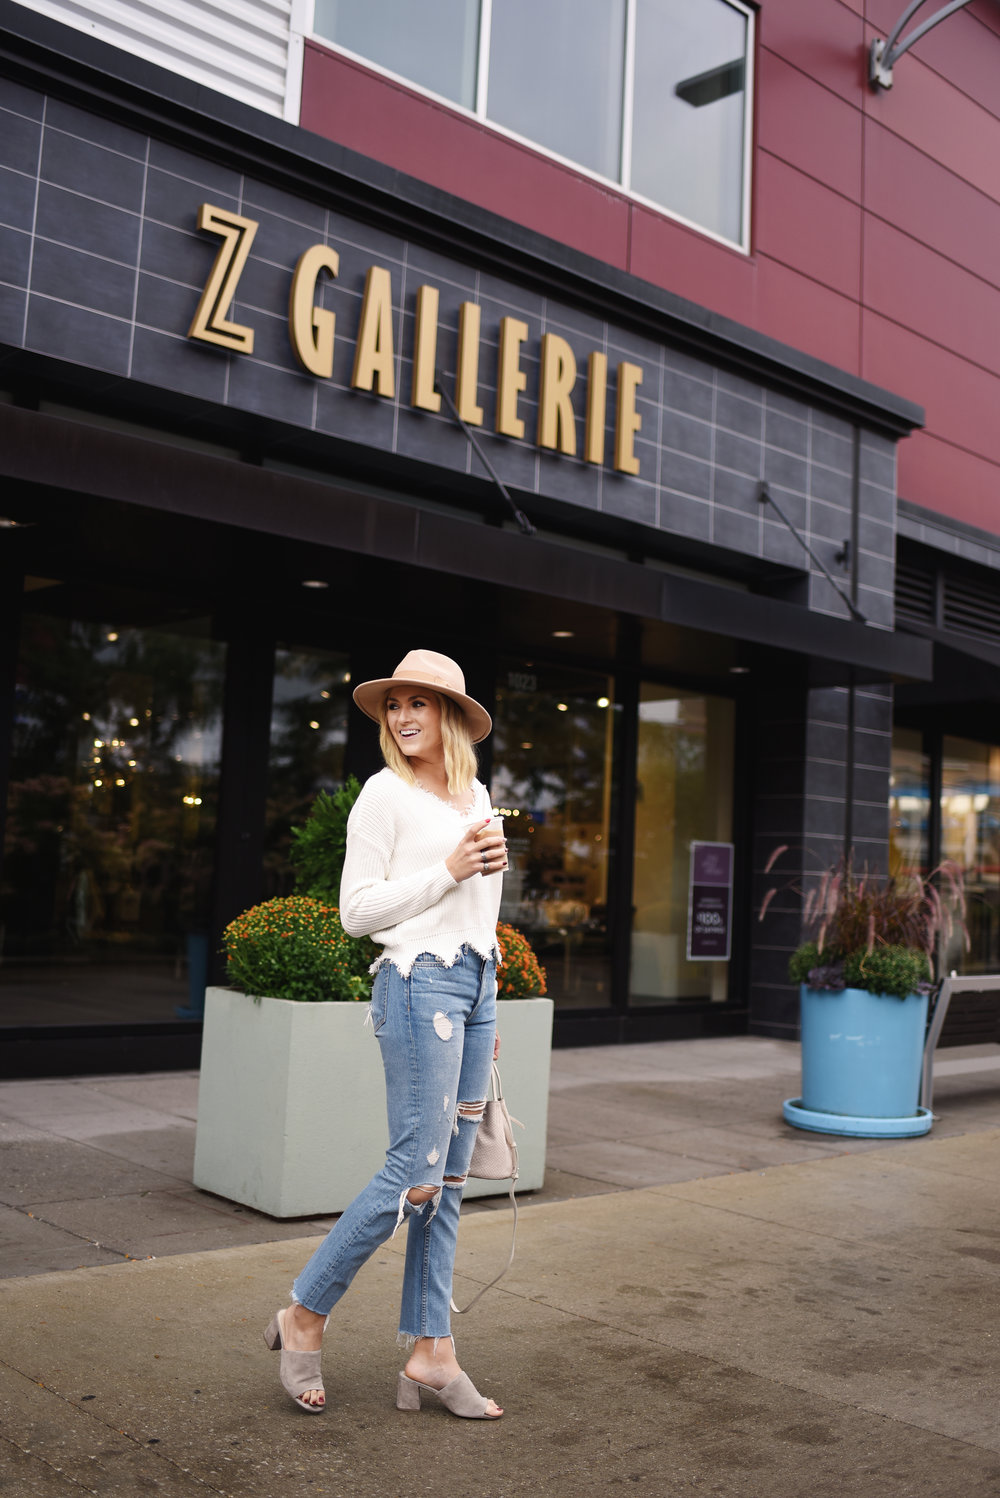 girl z gallerie shopping